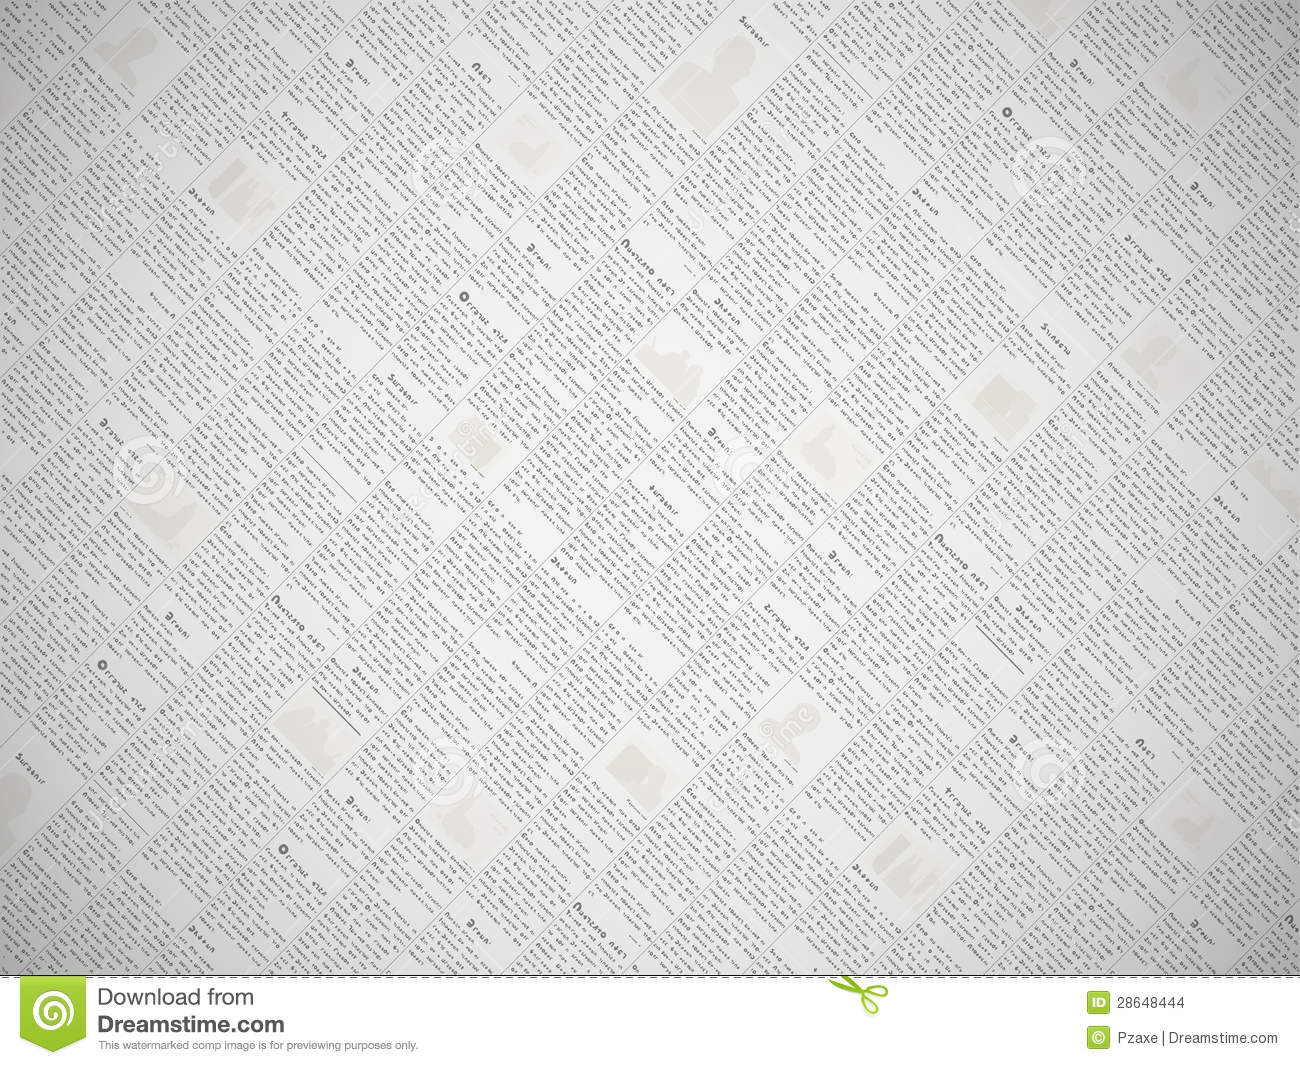 vector newspaper with background stock vector - illustration of